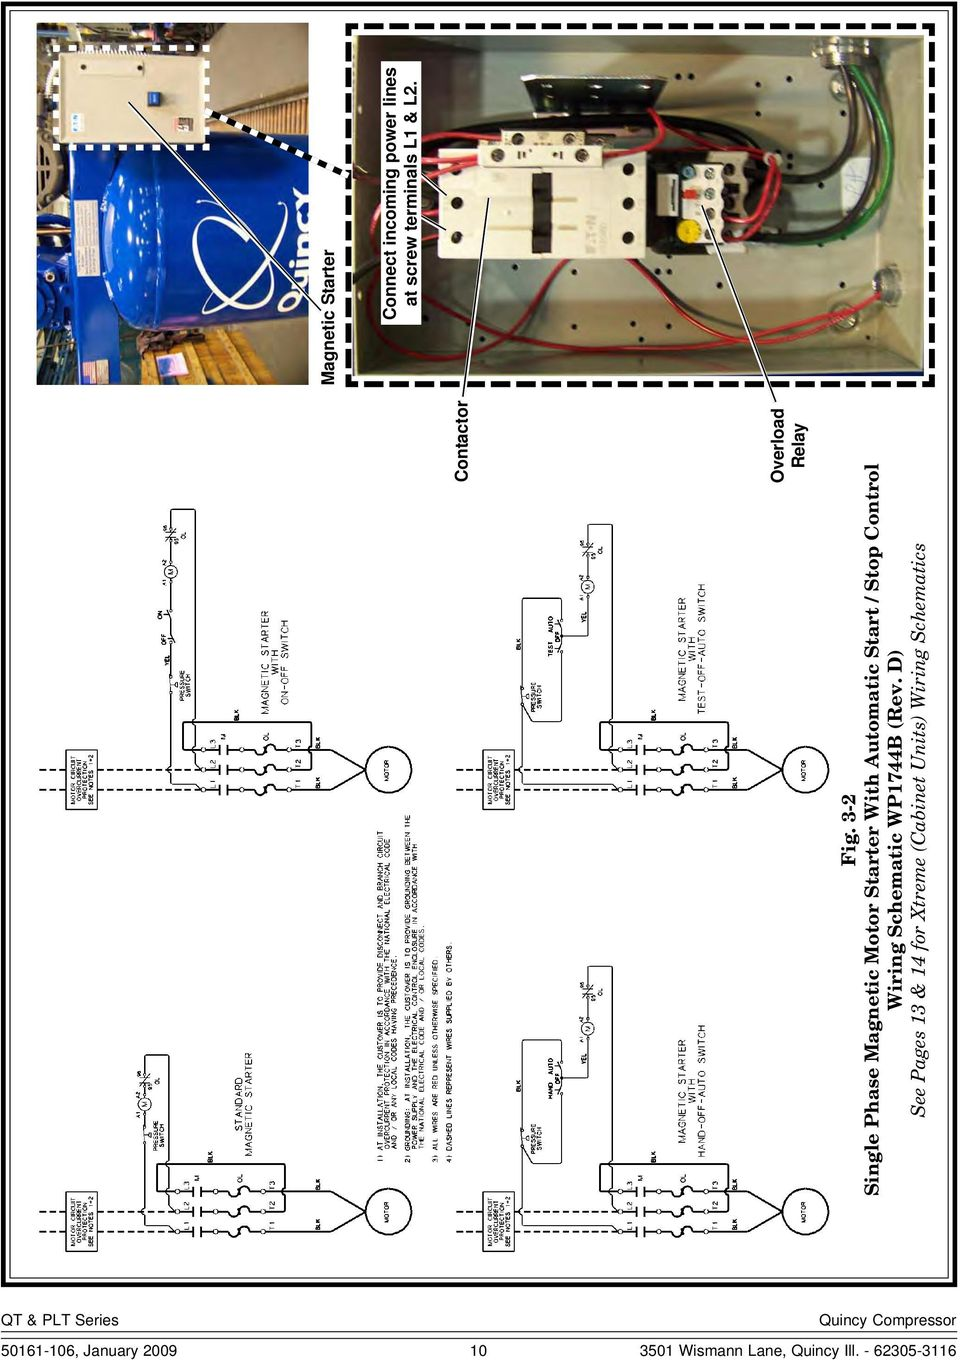 air compressor schematic diagram, air compressor ignition switch, air compressor with 220v wiring, air conditioning compressor wiring diagram, air compressor starter wiring diagram, air compressor chevy, air conditioner capacitor diagrams, air compressor relay wiring, air compressor electrical wiring, air compressor switch wiring, air compressor motor schematic, air compressor magnetic starter wiring, air compressor system diagram, air conditioner compressor wiring diagram, air compressor 240v wiring-diagram, air bag compressor wiring diagram, air compressor troubleshooting, air compressor manual, air compressor speaker, air compressor mounting hardware, on 2 stage air compressor wiring schematic